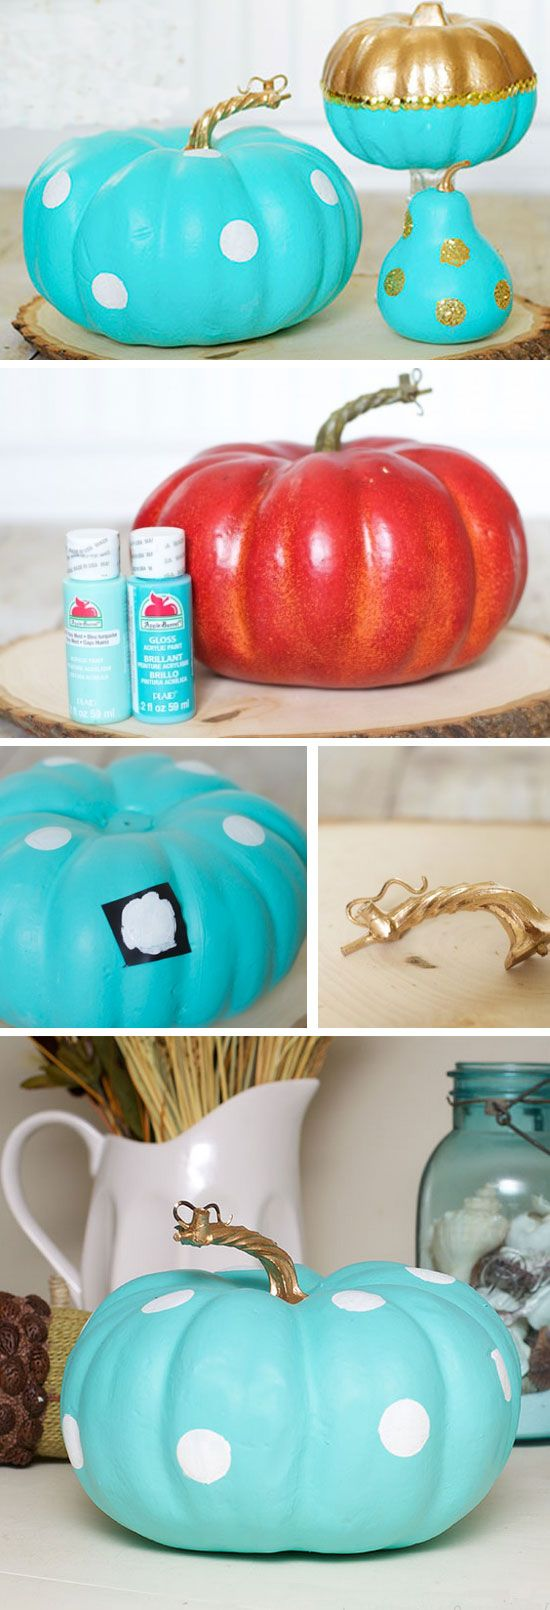 27 DIY Fall Front Porch Decorating Ideas DIY Halloween - Cheap Diy Halloween Decorations